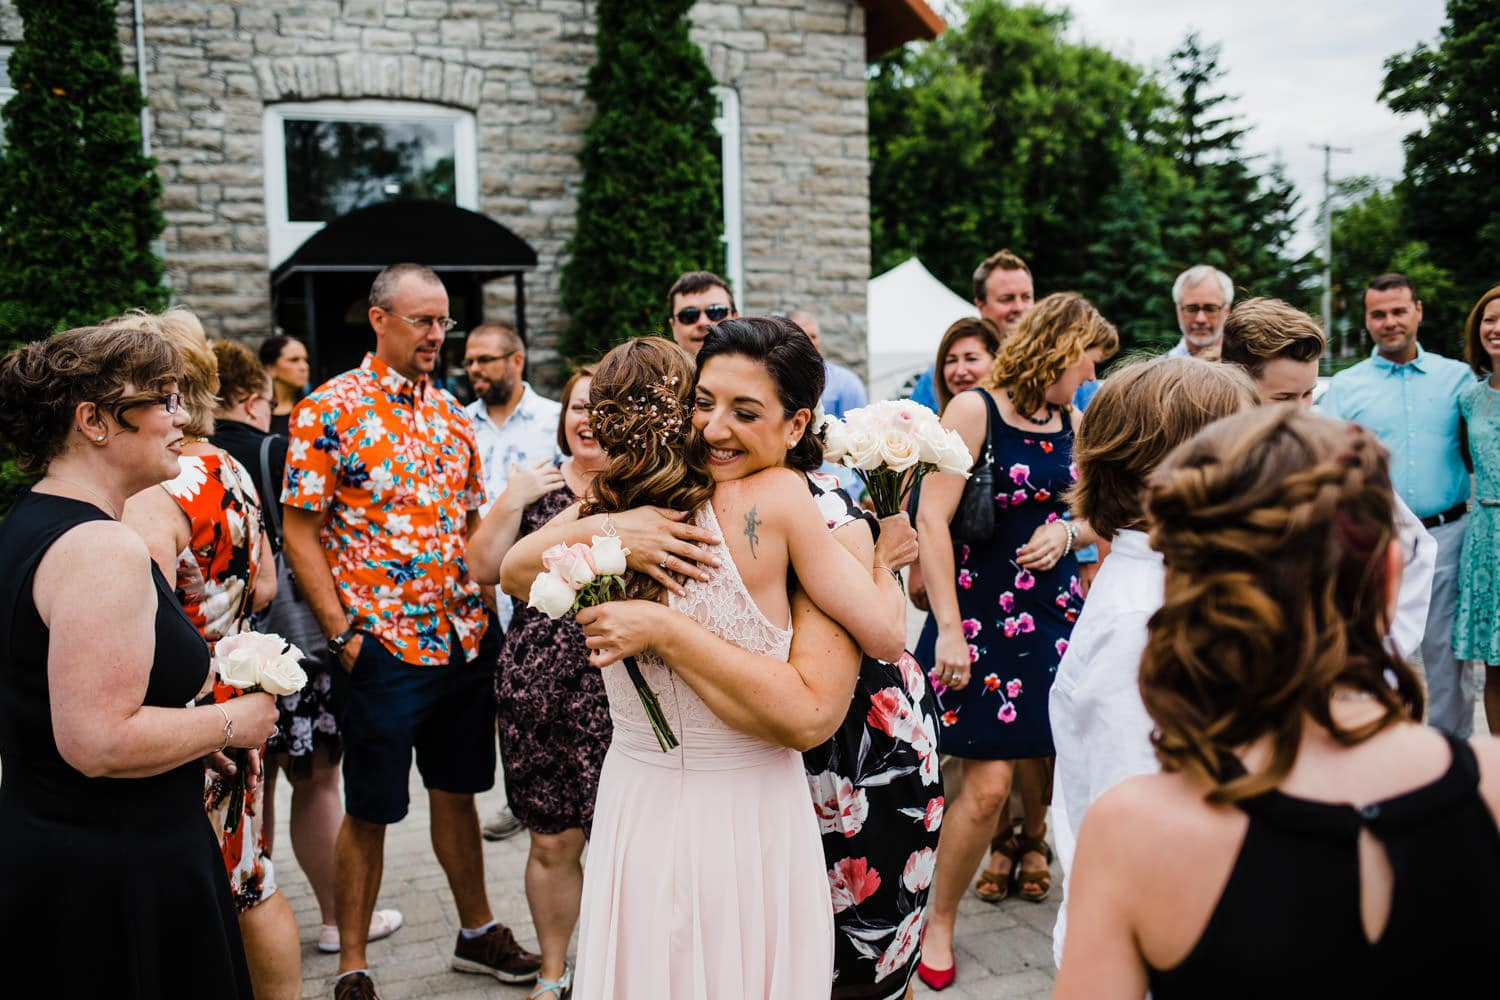 bride celebrates with guests - small outdoor wedding at the schoolhouse